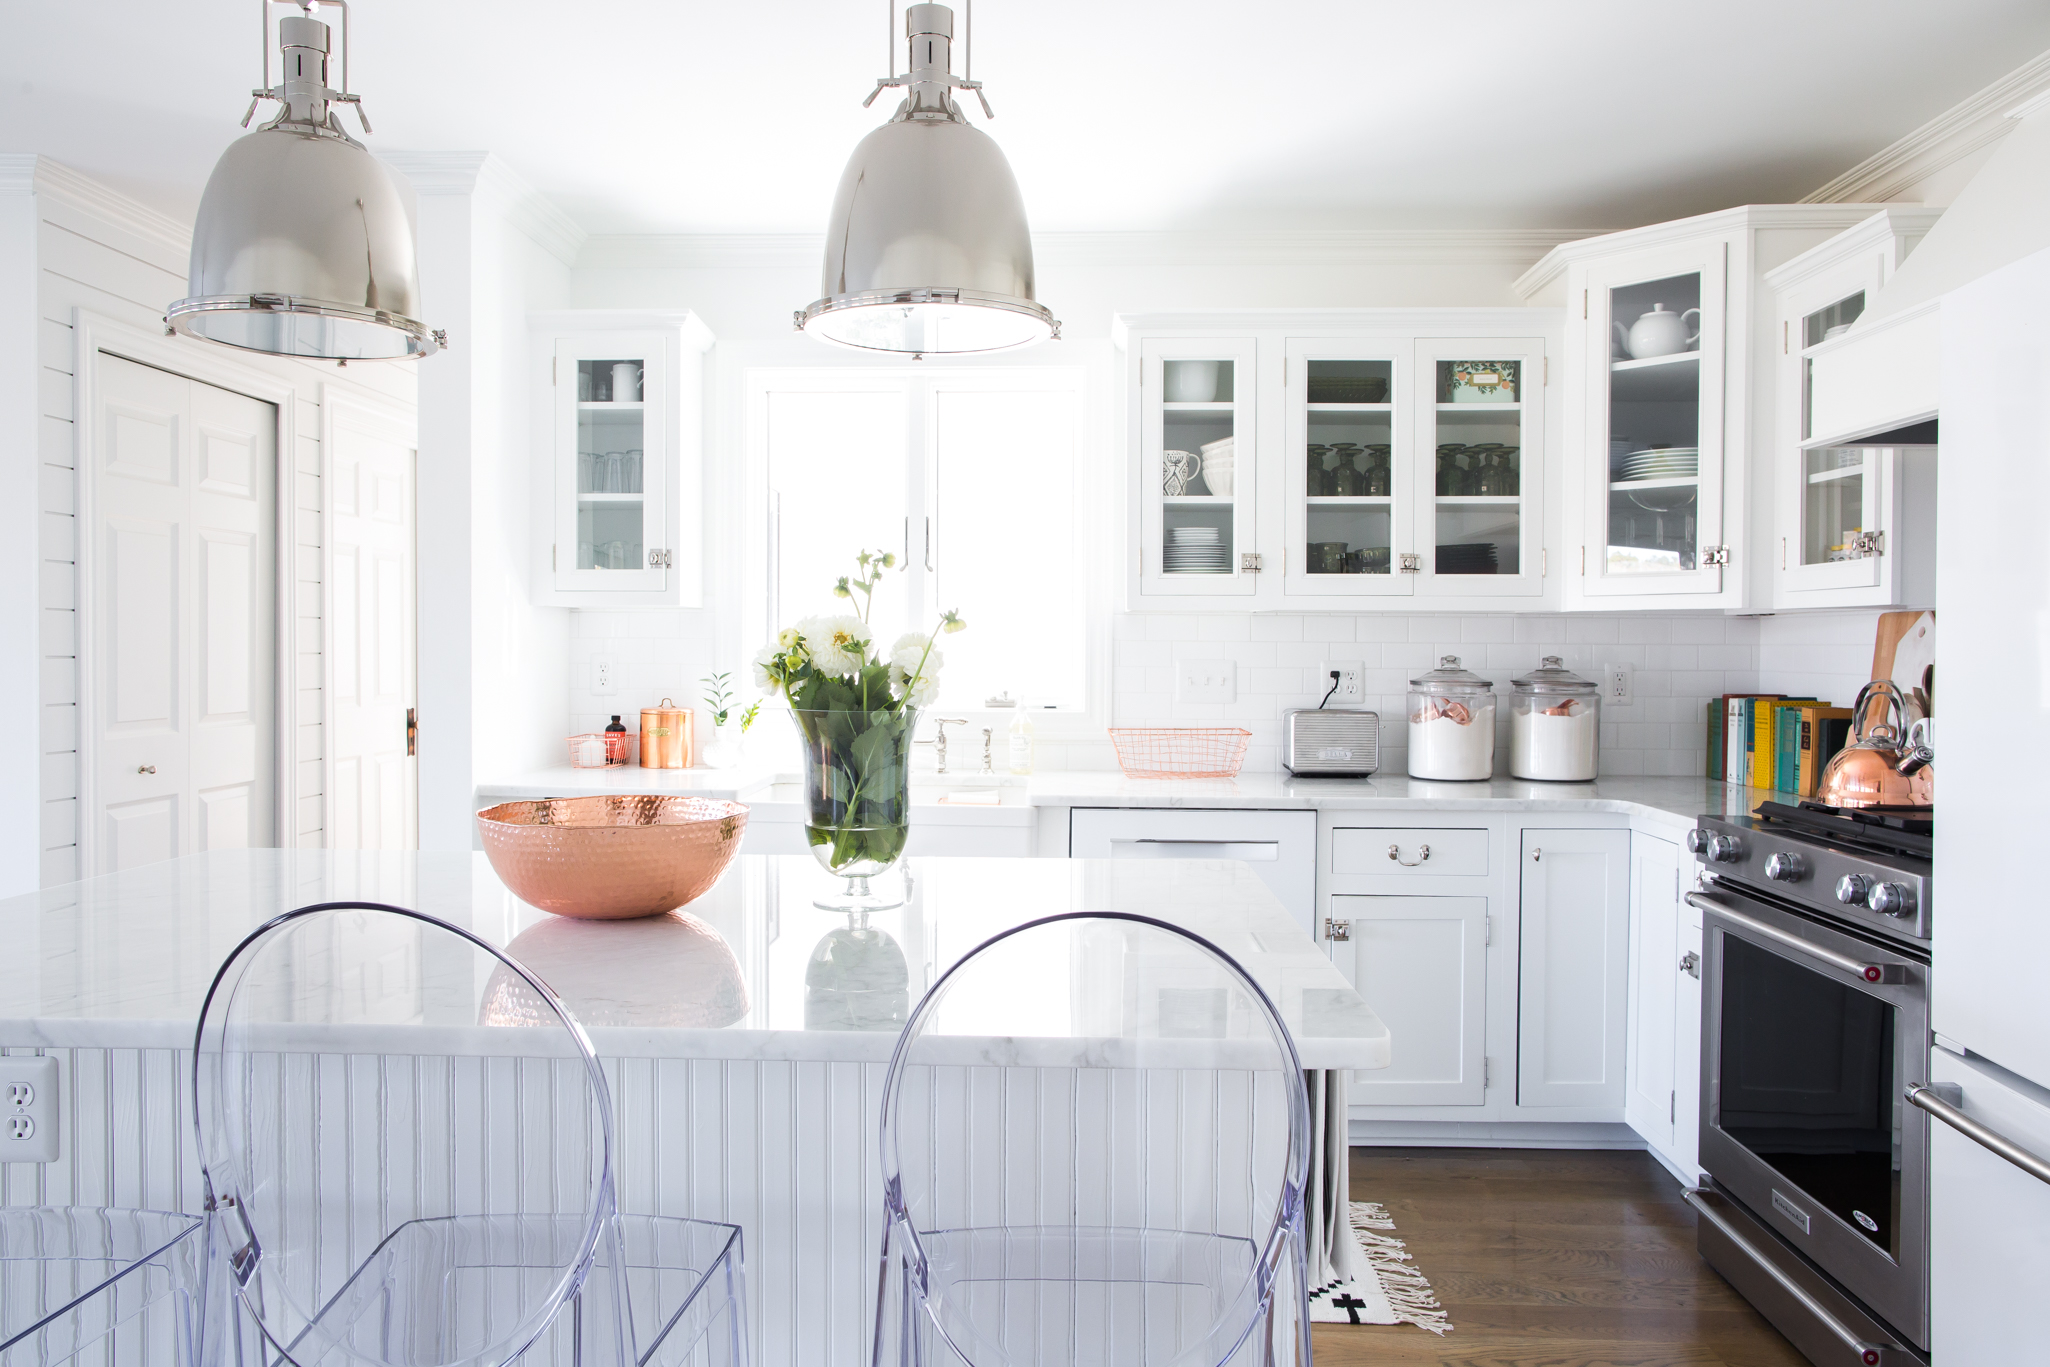 White Kitchen with Modular Design